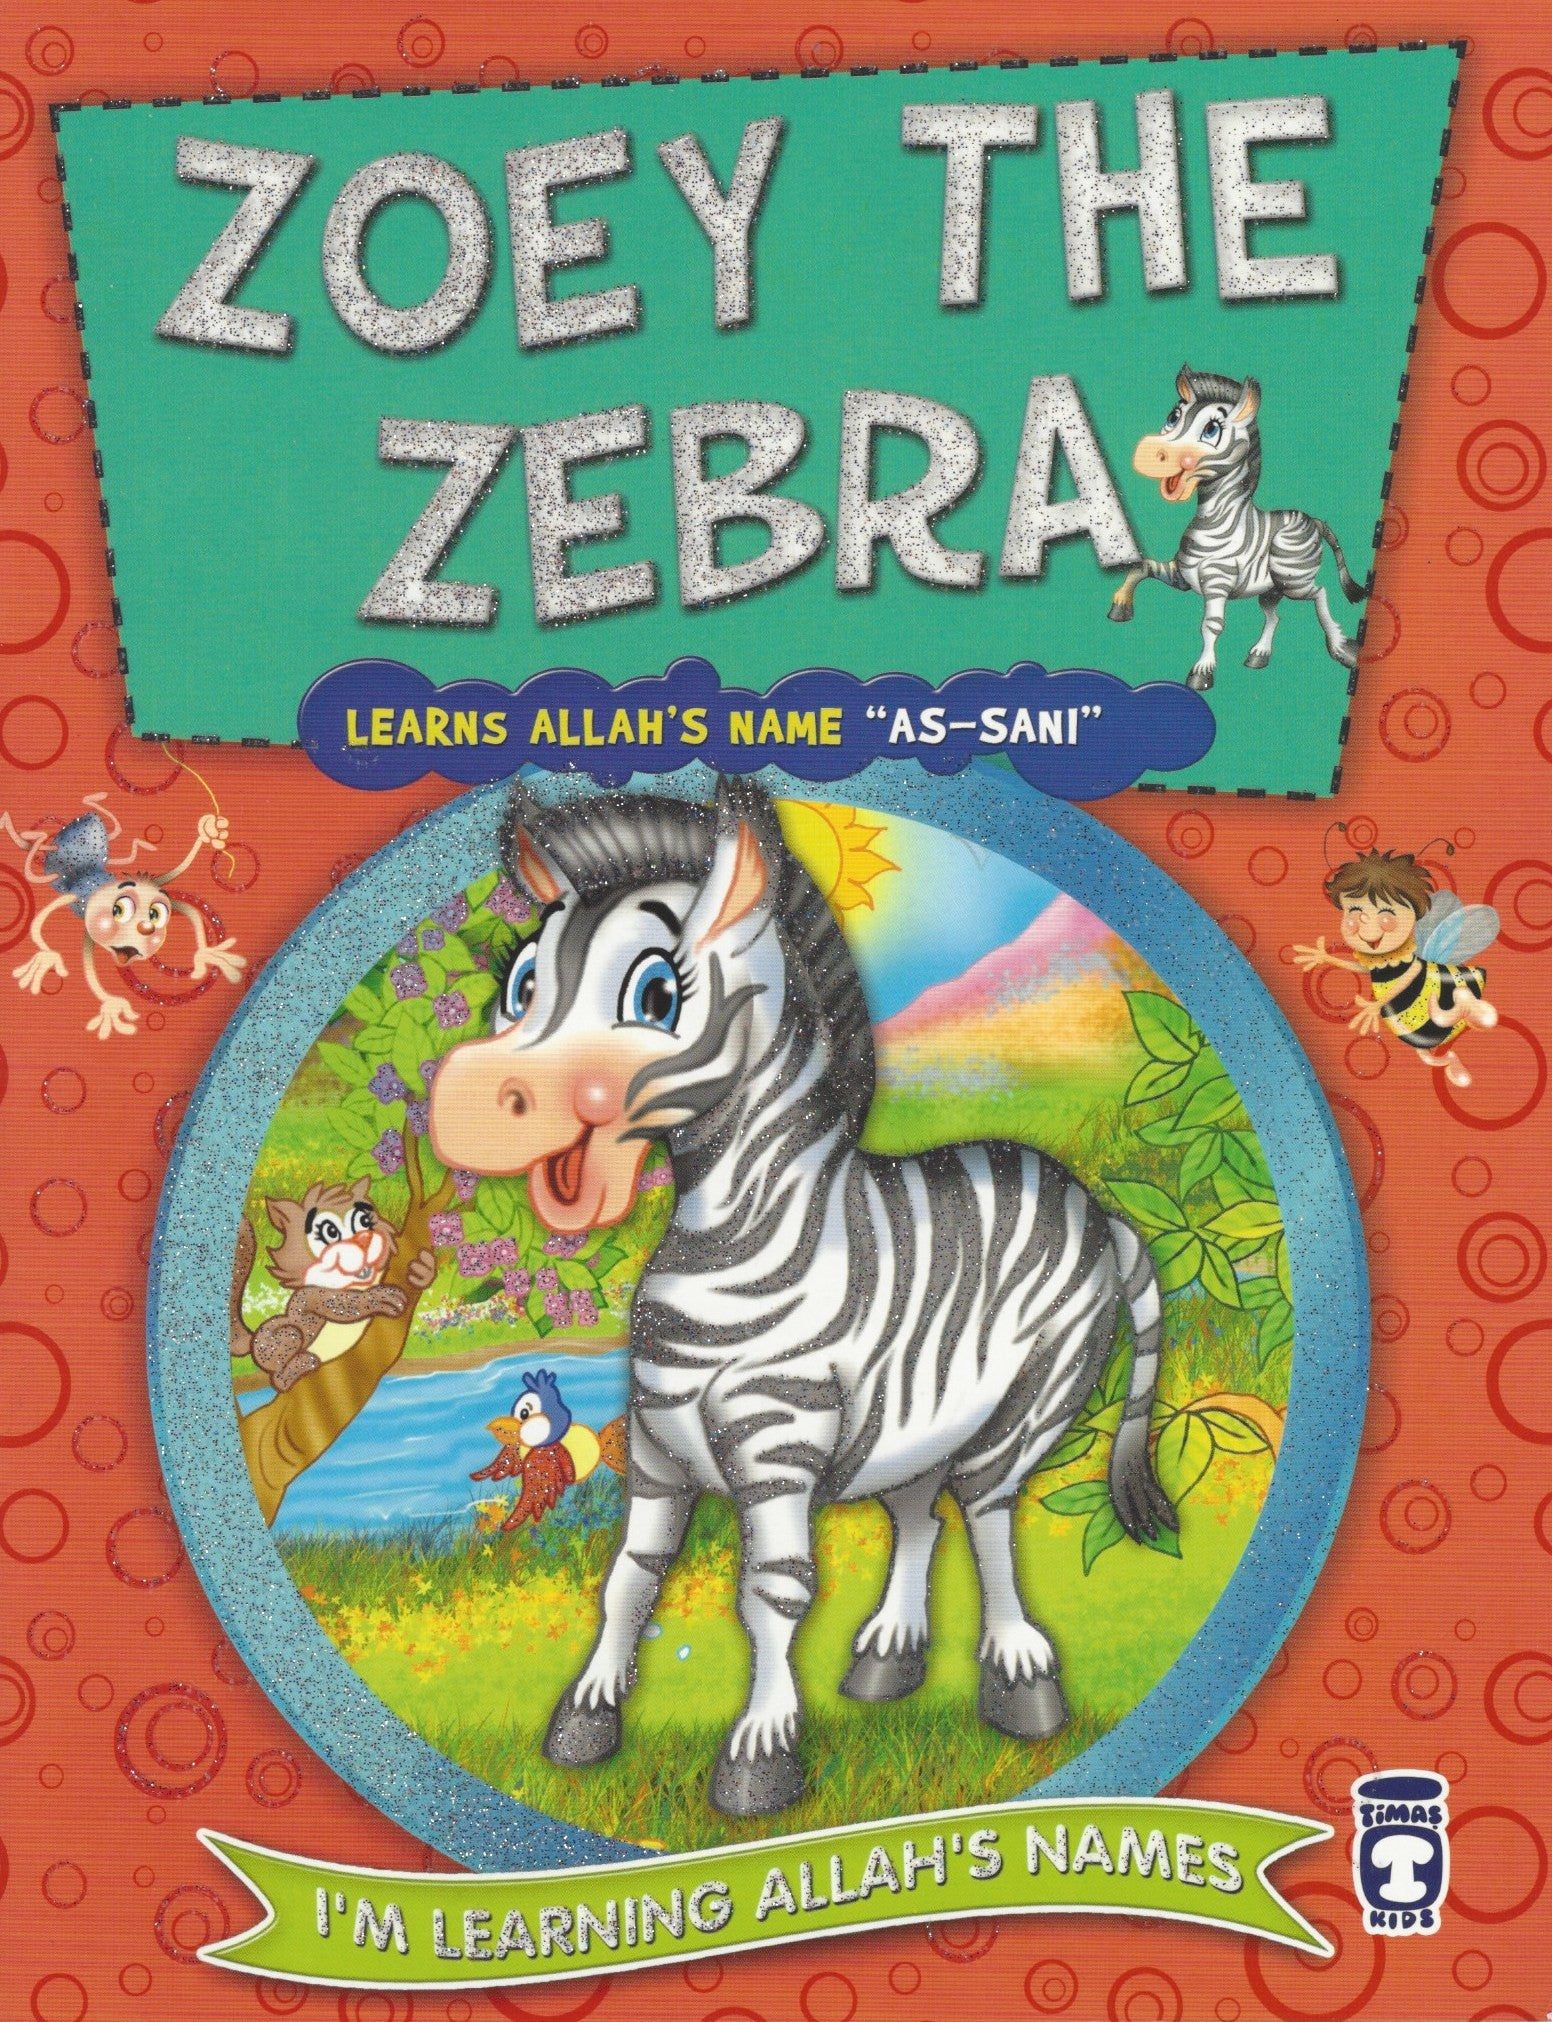 I'm Learning Allah's Names: Set 2 Zoey the Zebra, Book - Daybreak International Bookstore, Daybreak Press Global Bookshop  - 10